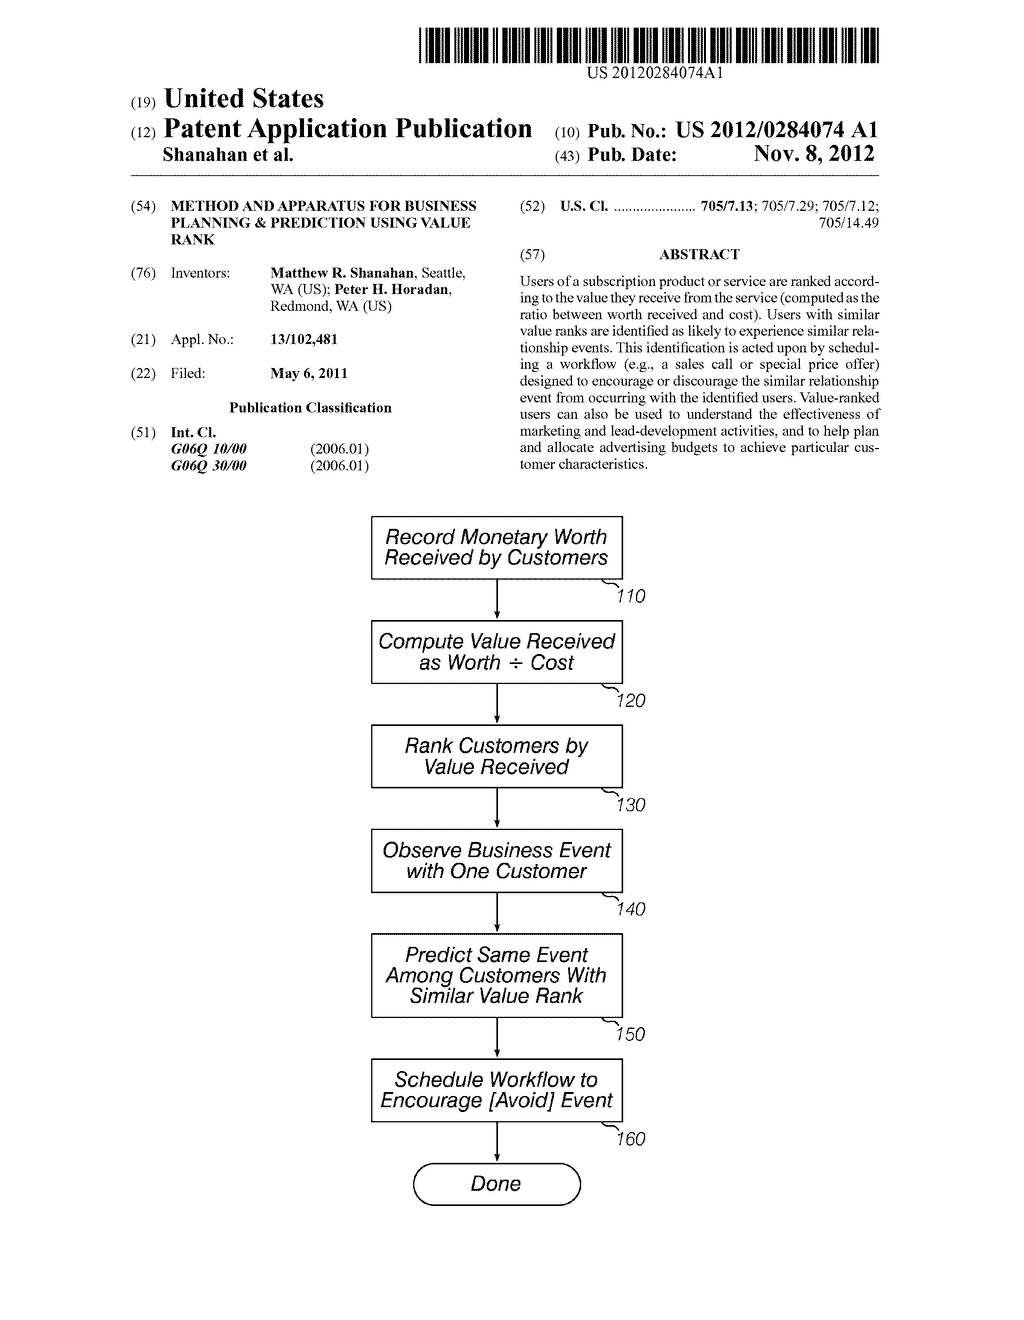 Method and Apparatus for Business Planning & Prediction Using Value Rank - diagram, schematic, and image 01